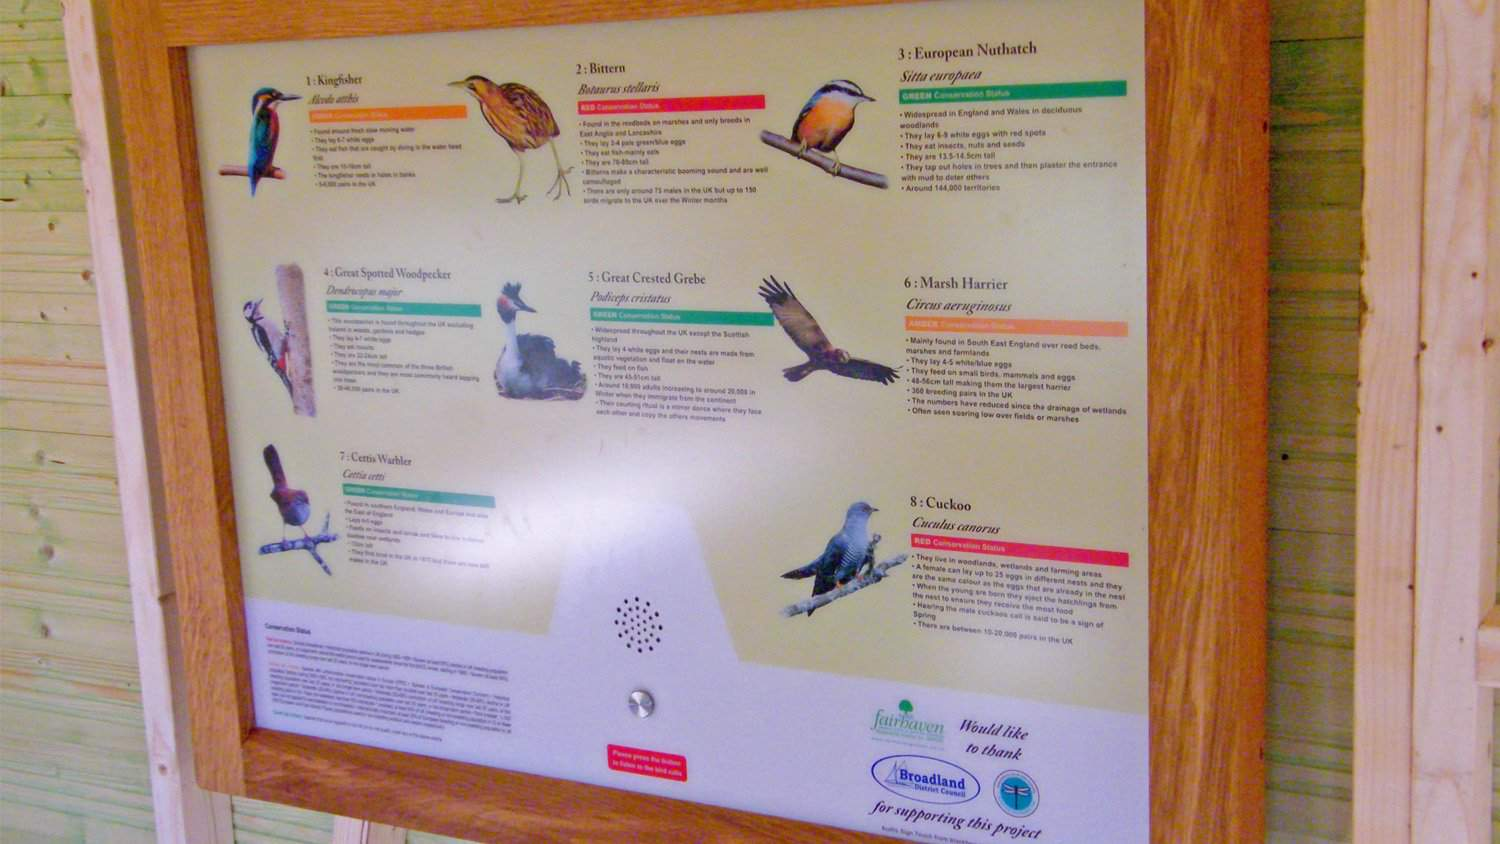 AudioSign Touch Panel at Fairhaven Gardens in Bird Hide